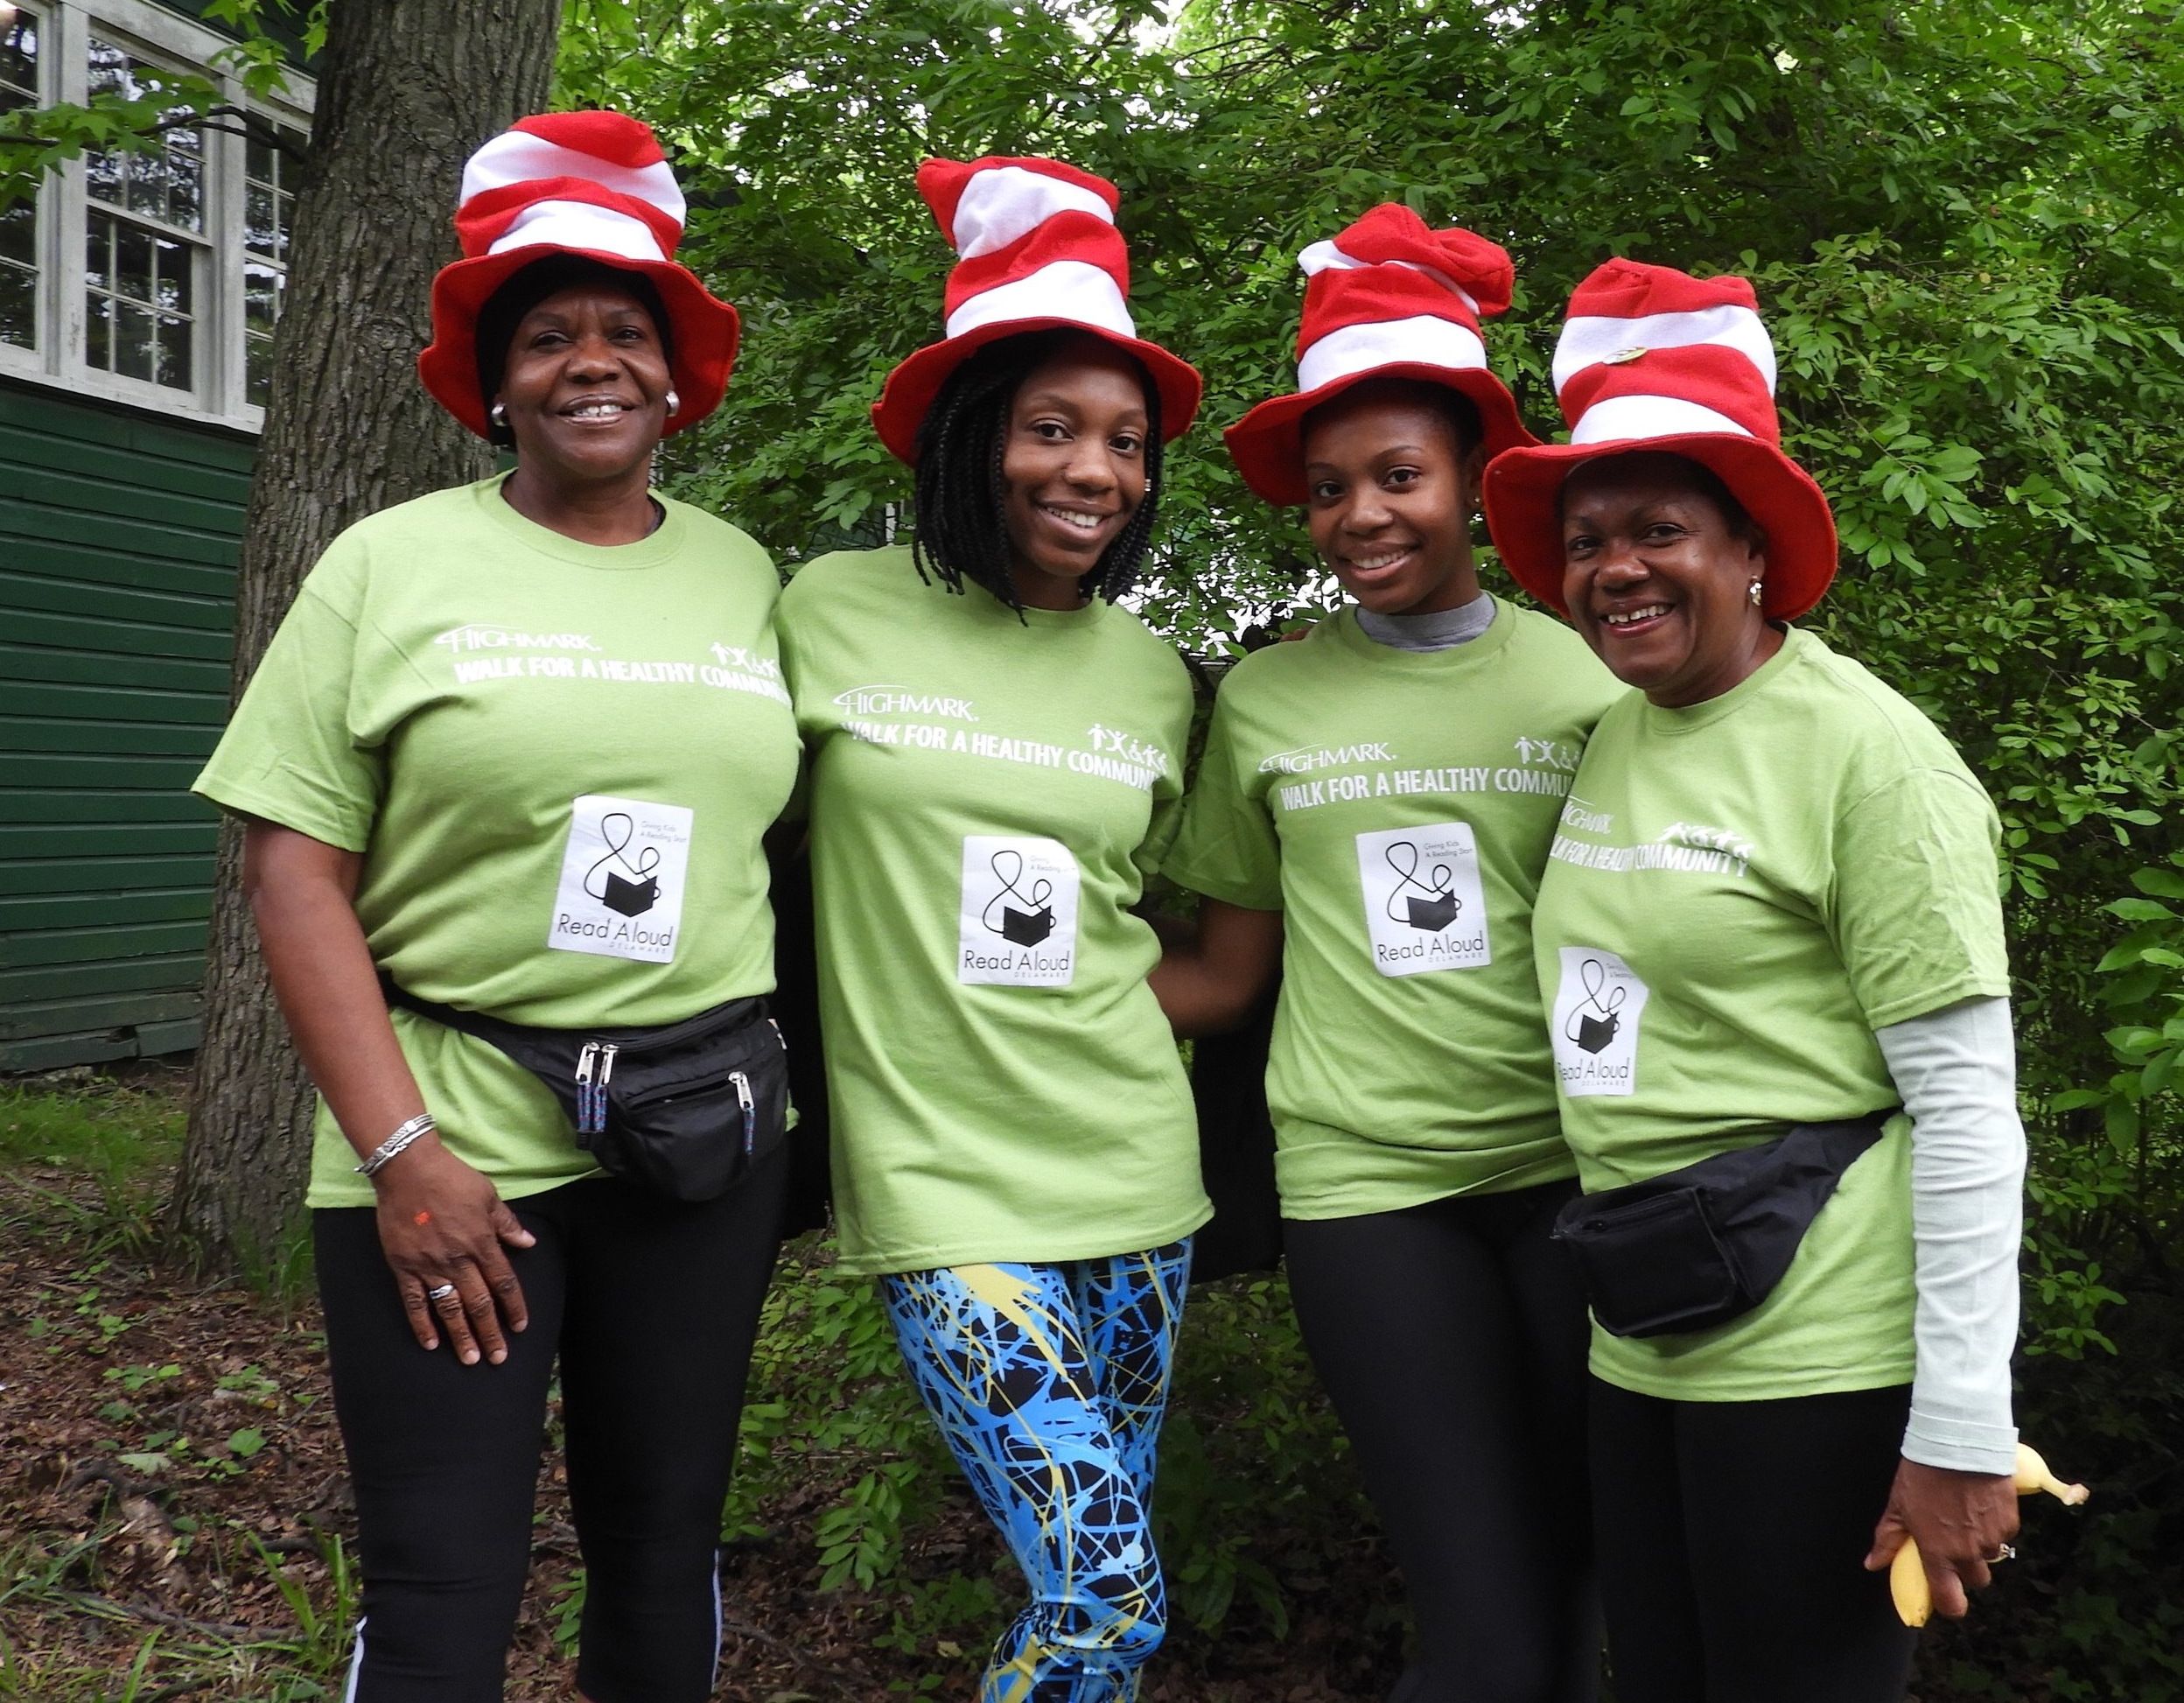 Support us in the Highmark Walk - Join us on June 8, 2019 for a fun event to raise funds for Read Aloud Delaware and introduce friends to our mission. For more information, please call us at (302) 656-5256.